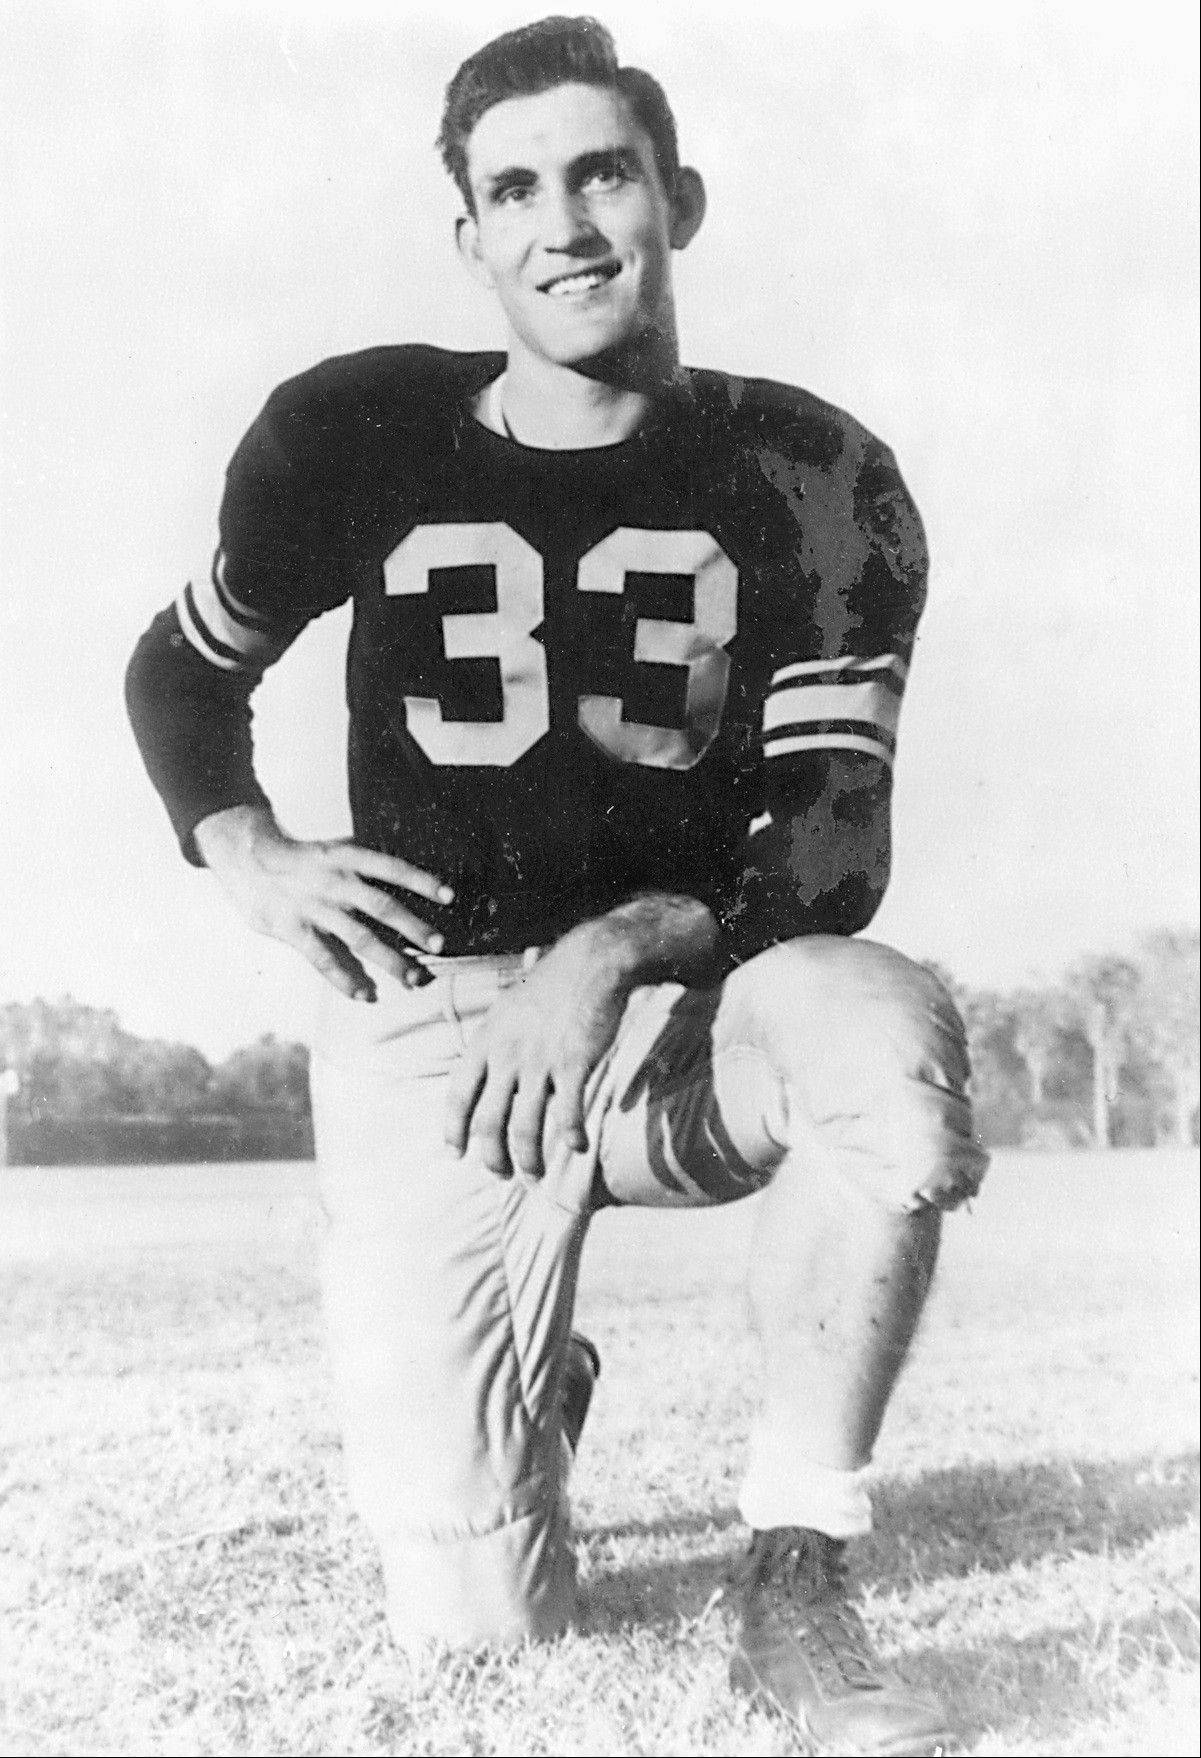 Wilford White, an Arizona State University Hall of Famer and father of former Dallas Cowboys quarterback Danny White.